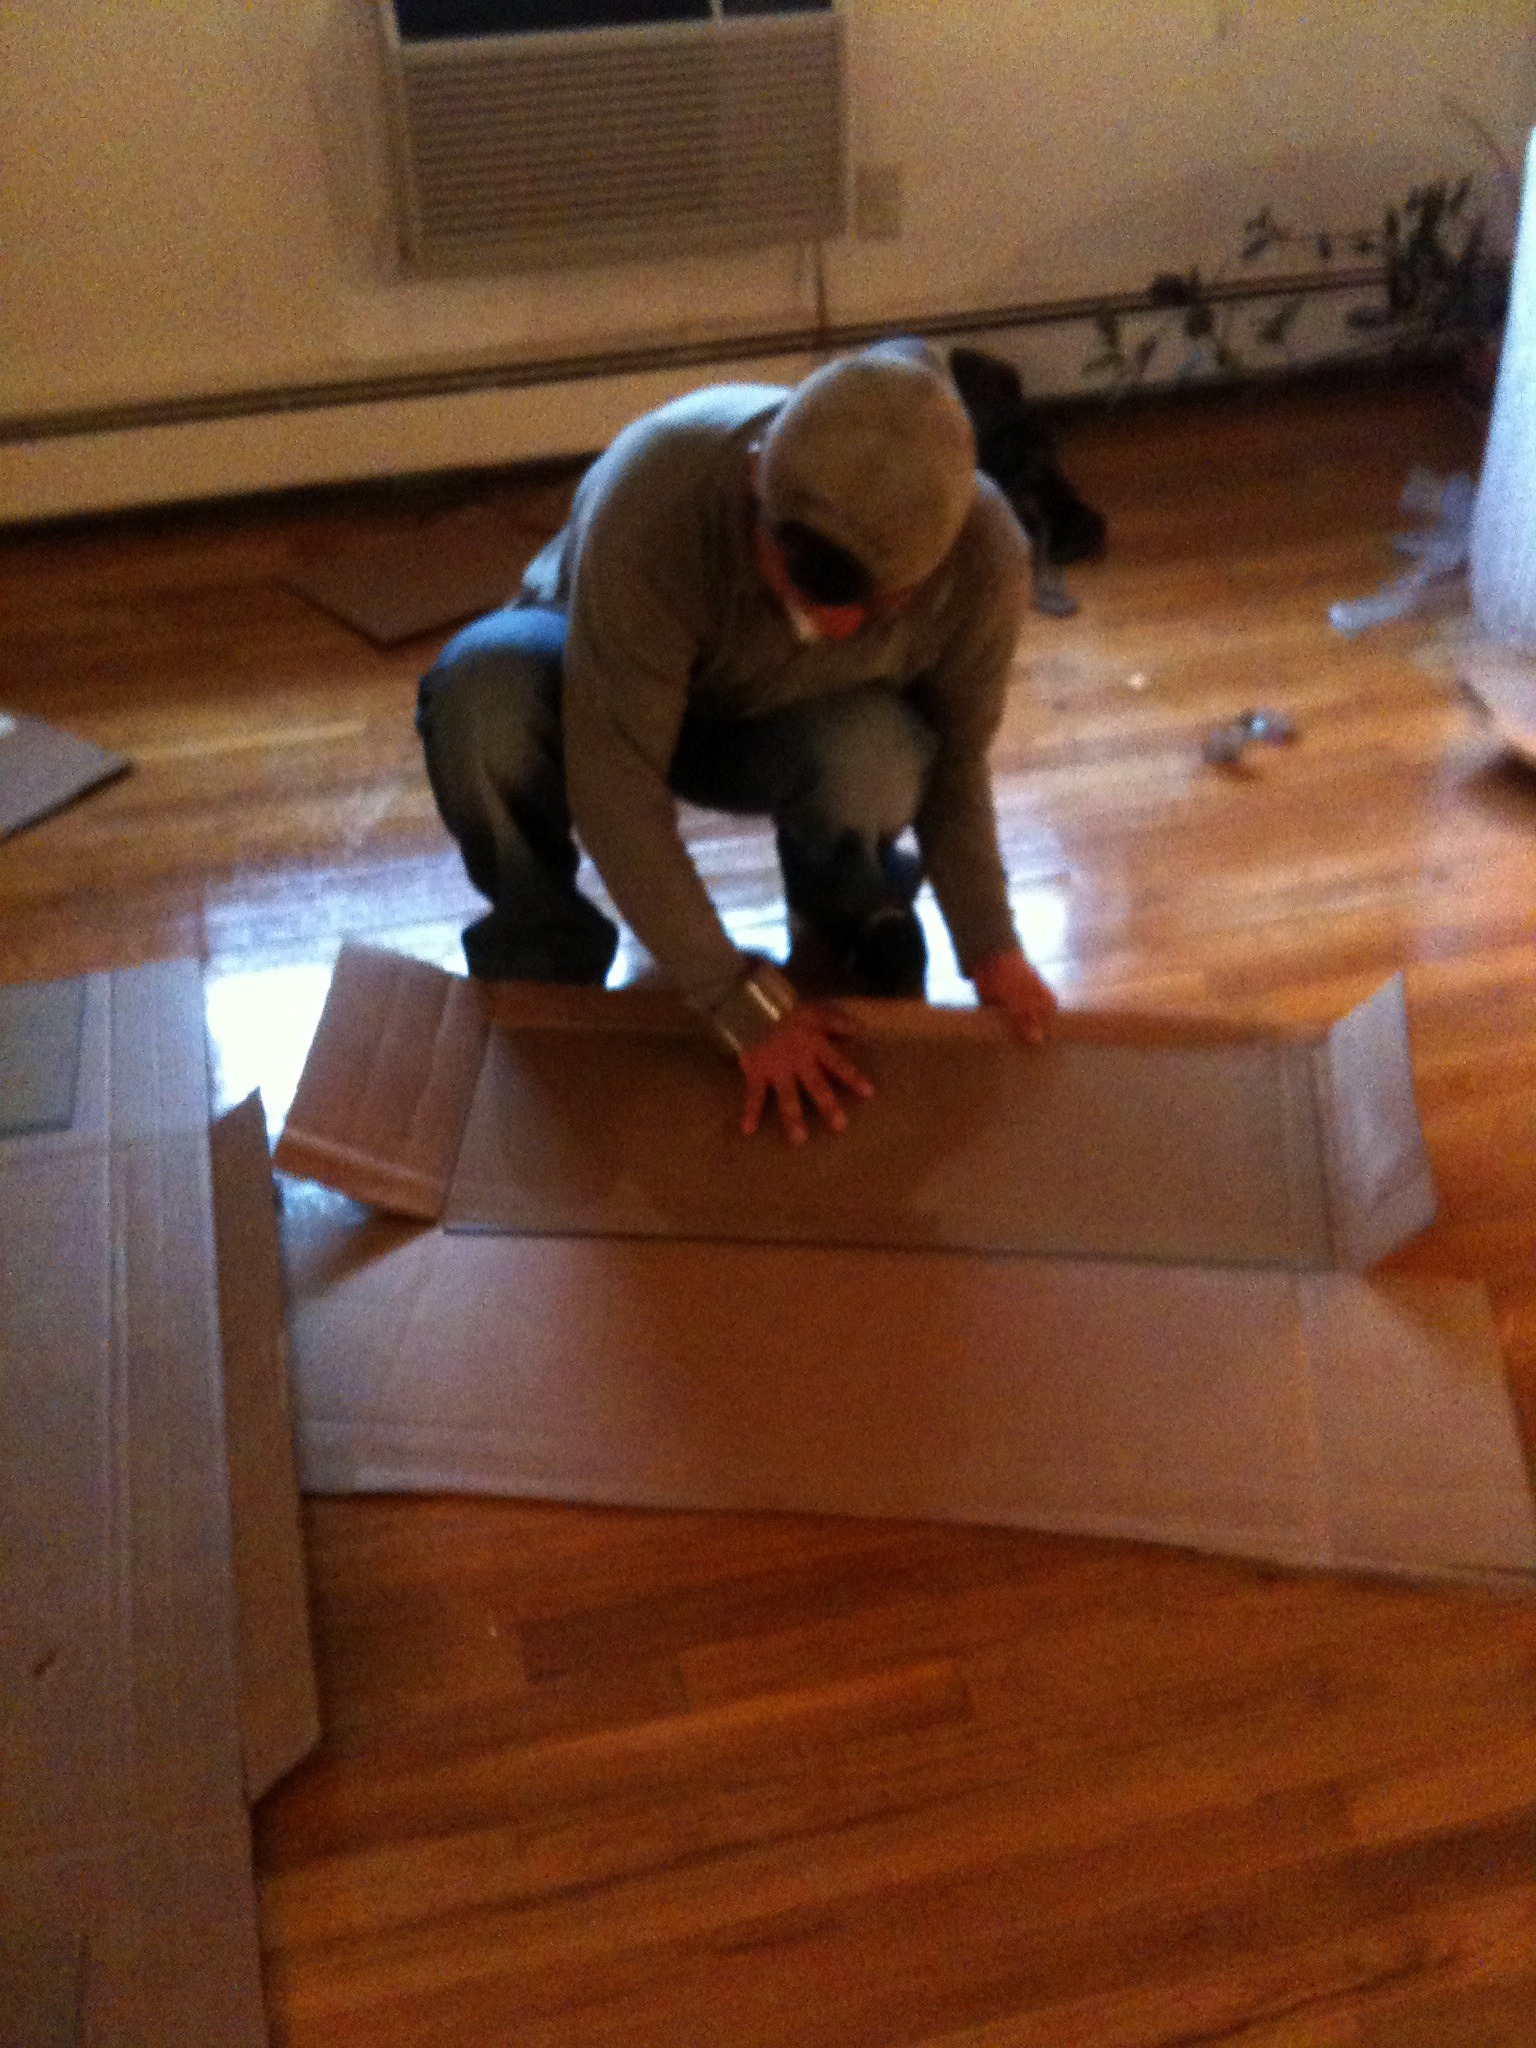 Midland Park Piano Movers - RESIDENTIAL RELOCATION SERVICES